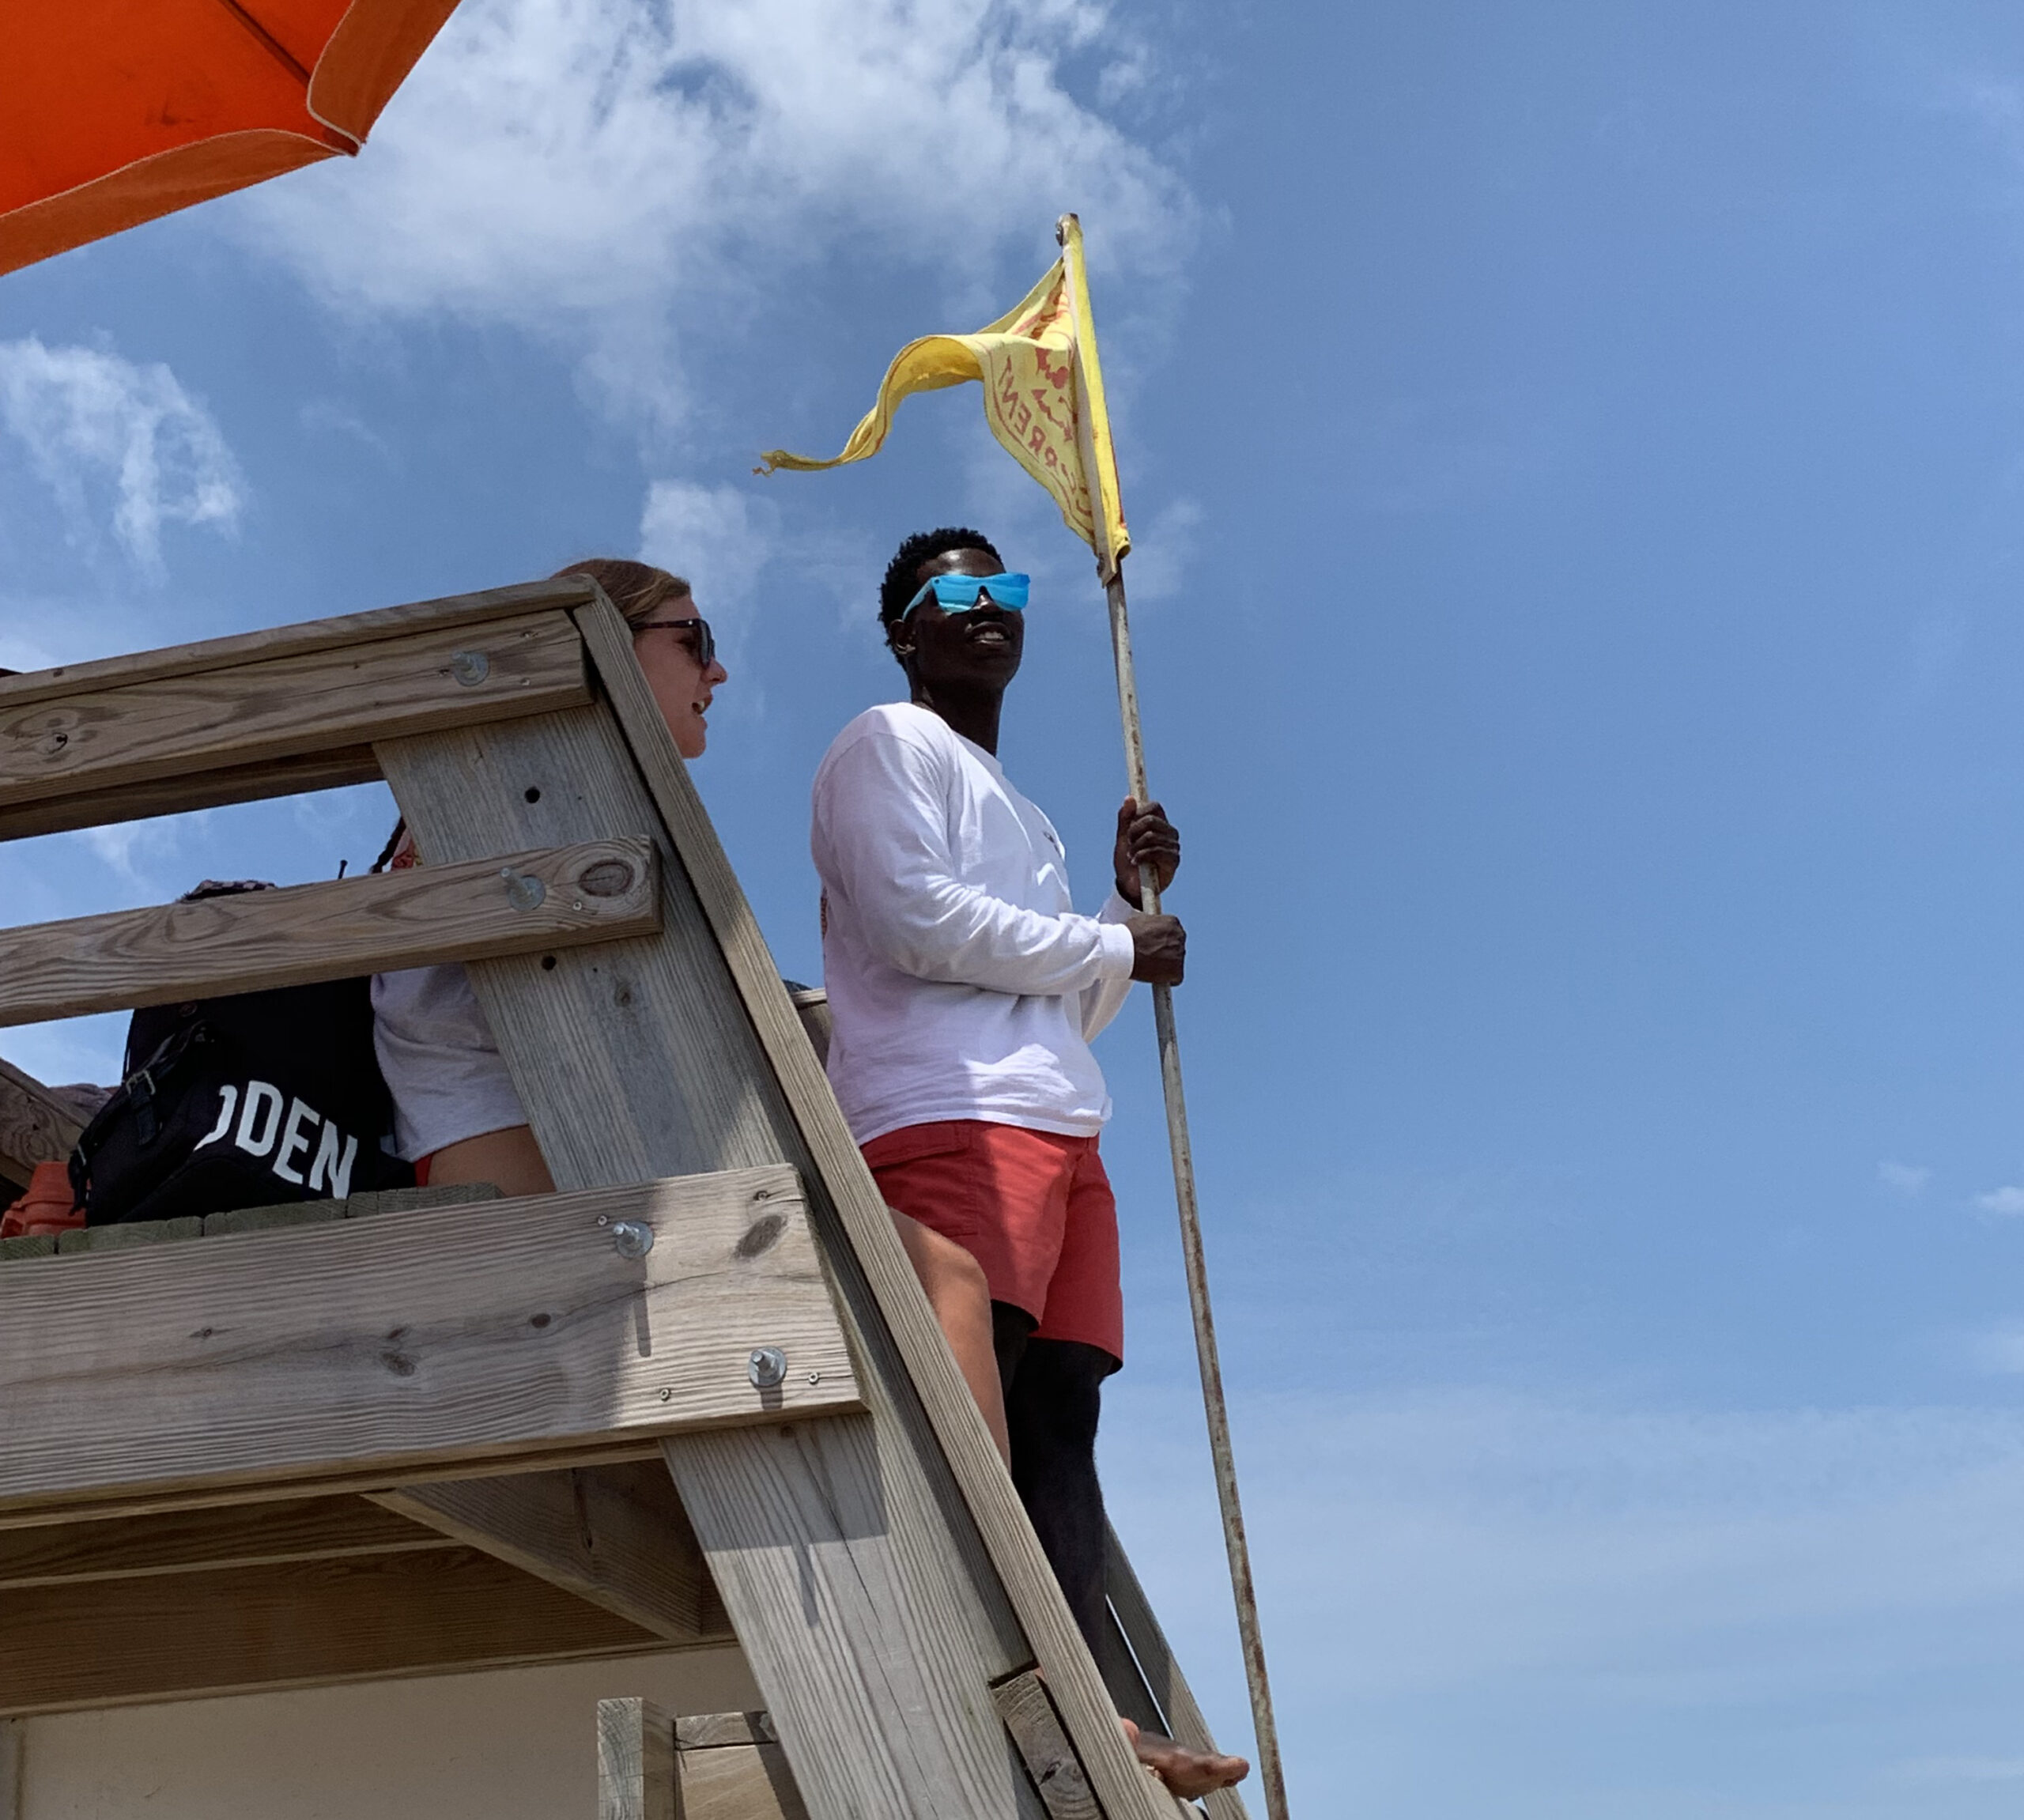 Kill Devil Hills Ocean Rescue lifeguard Reggie Kelly holds a yellow flag, warning swimmers to be cautious of strong currents.